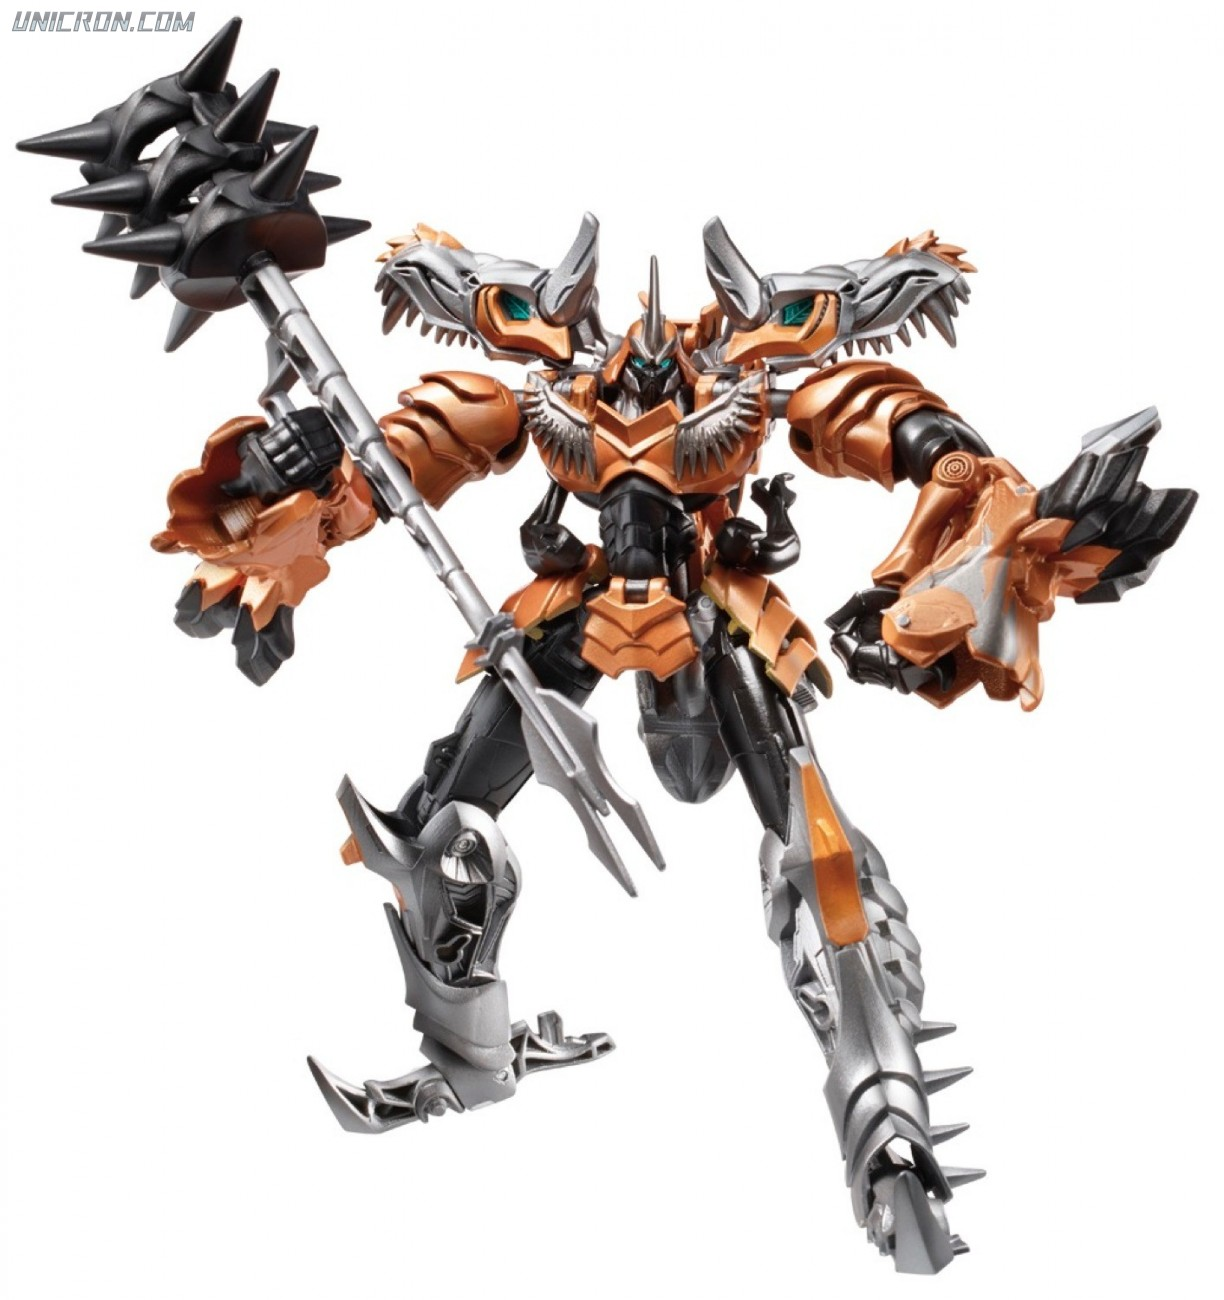 Transformers 4 Age of Extinction Grimlock (AoE - Generations Voyager) toy